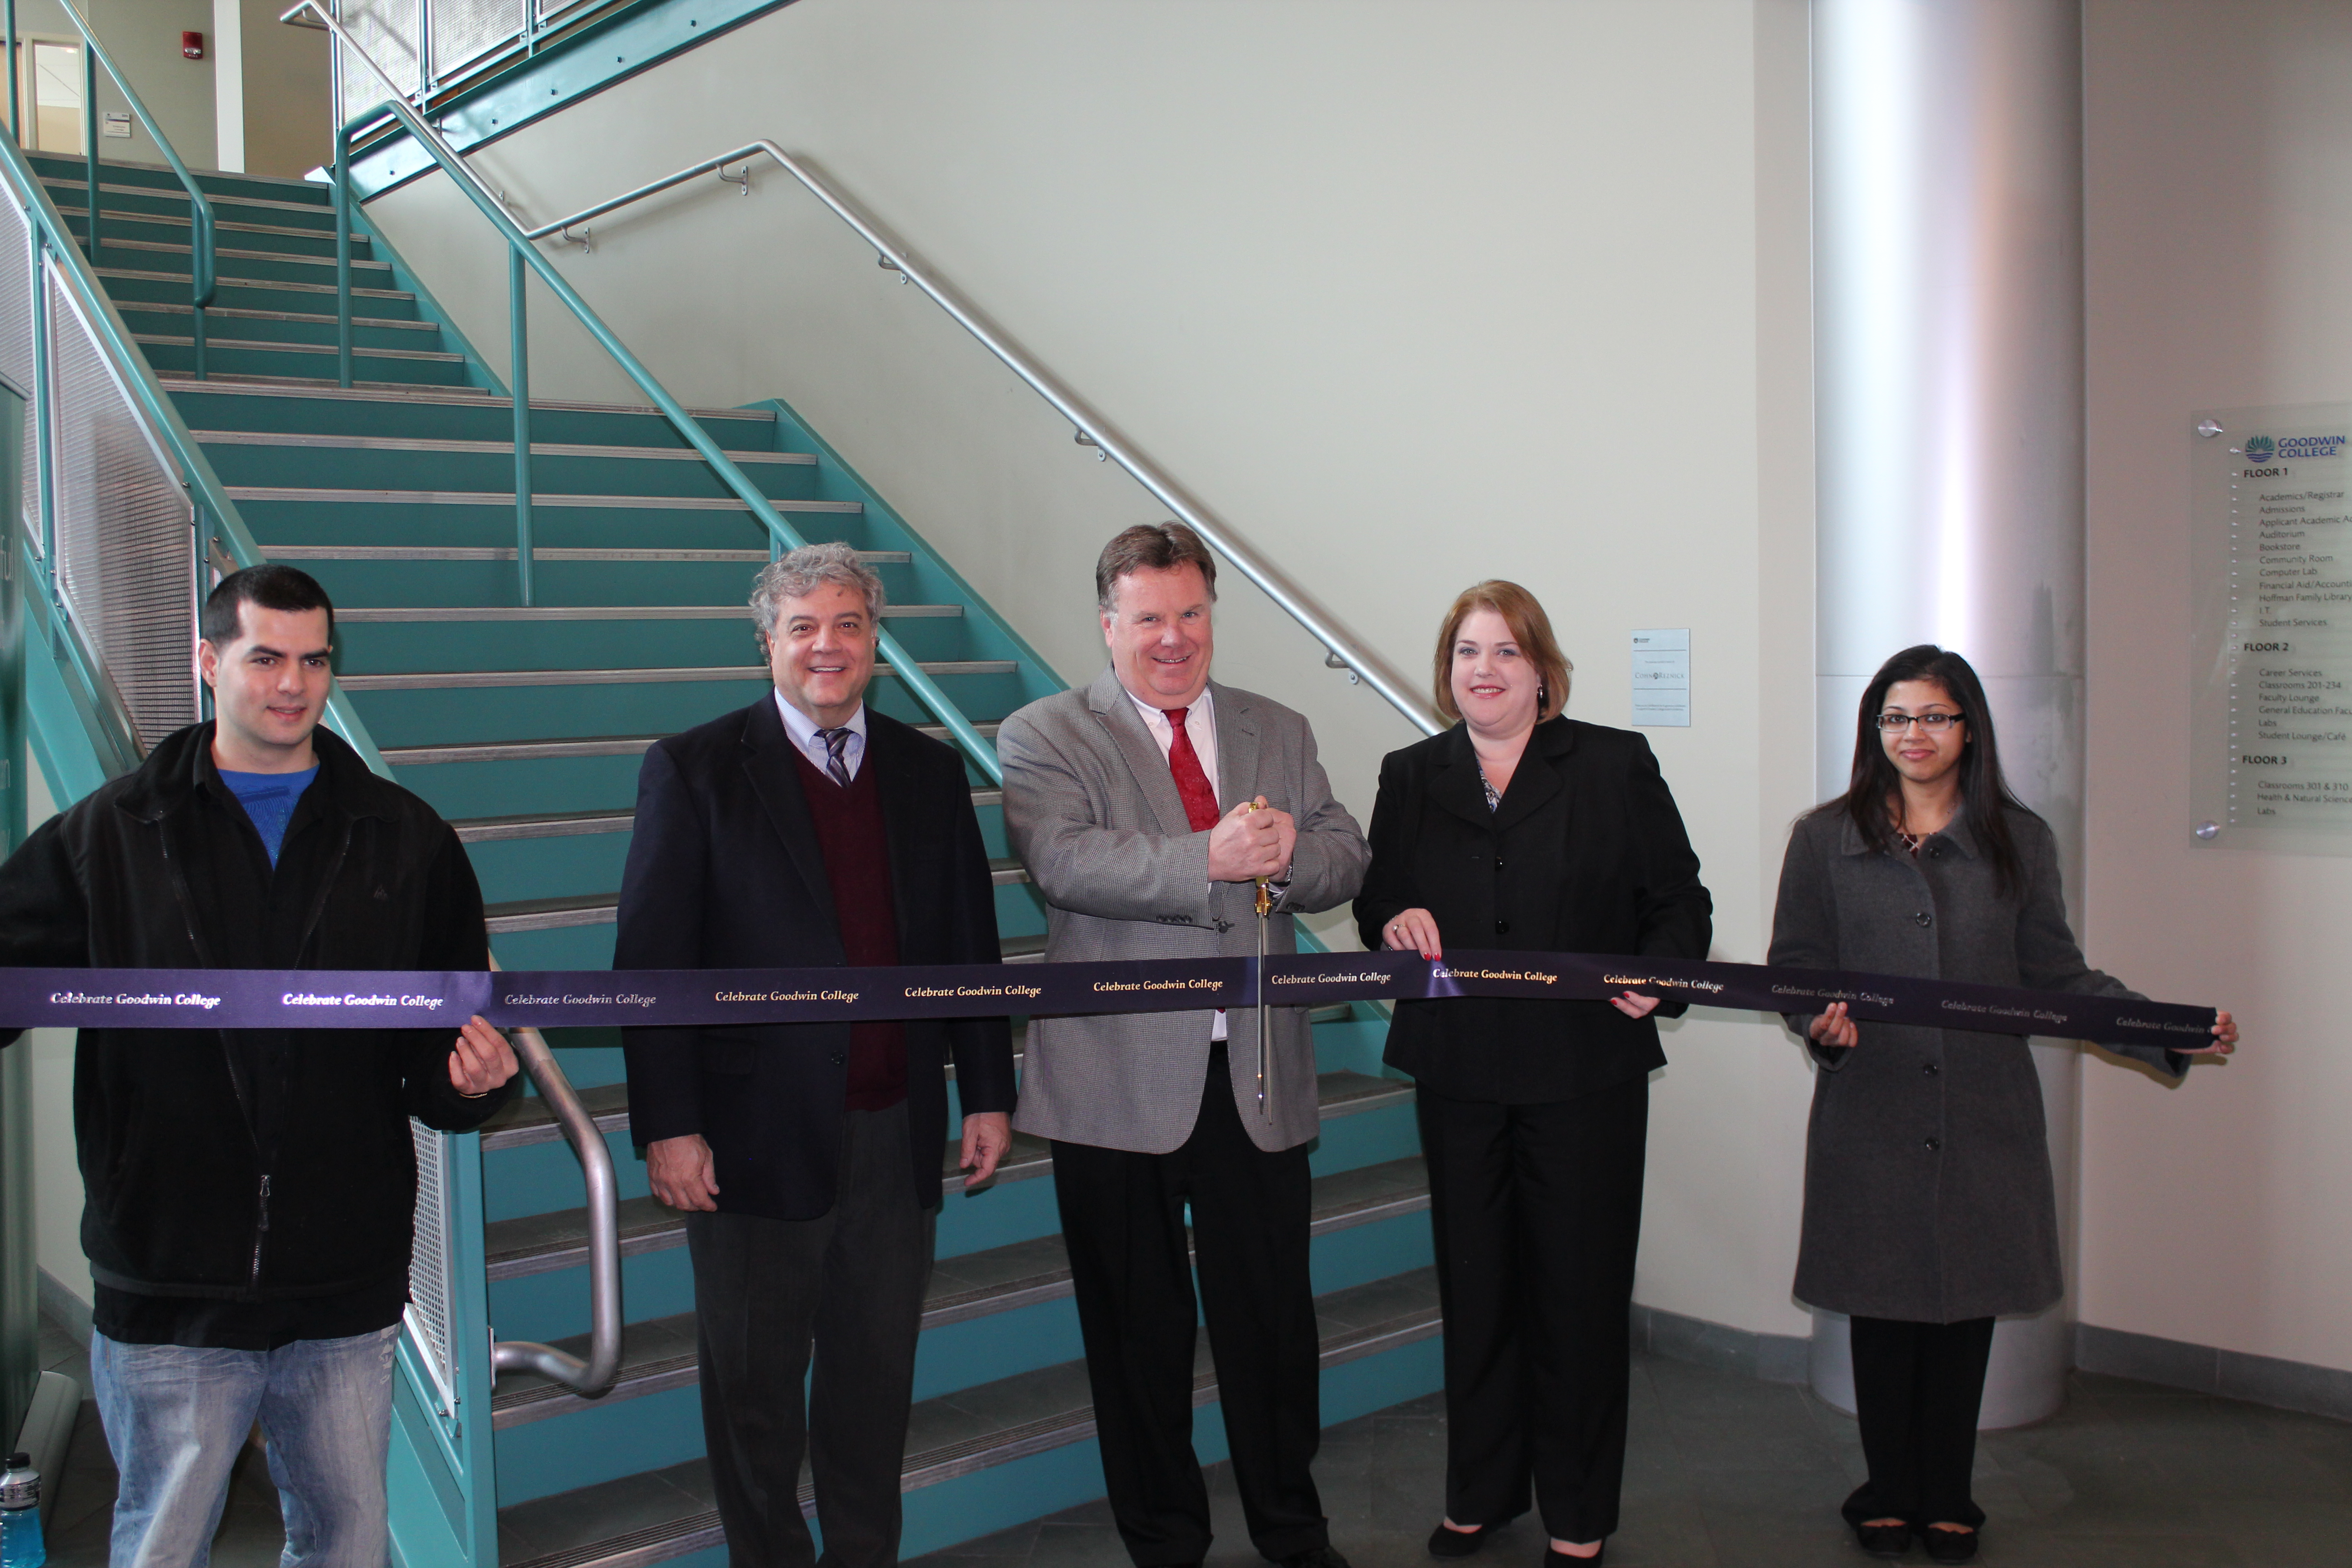 Goodwin Dedicates Lobby Staircase to CohnReznick LLP